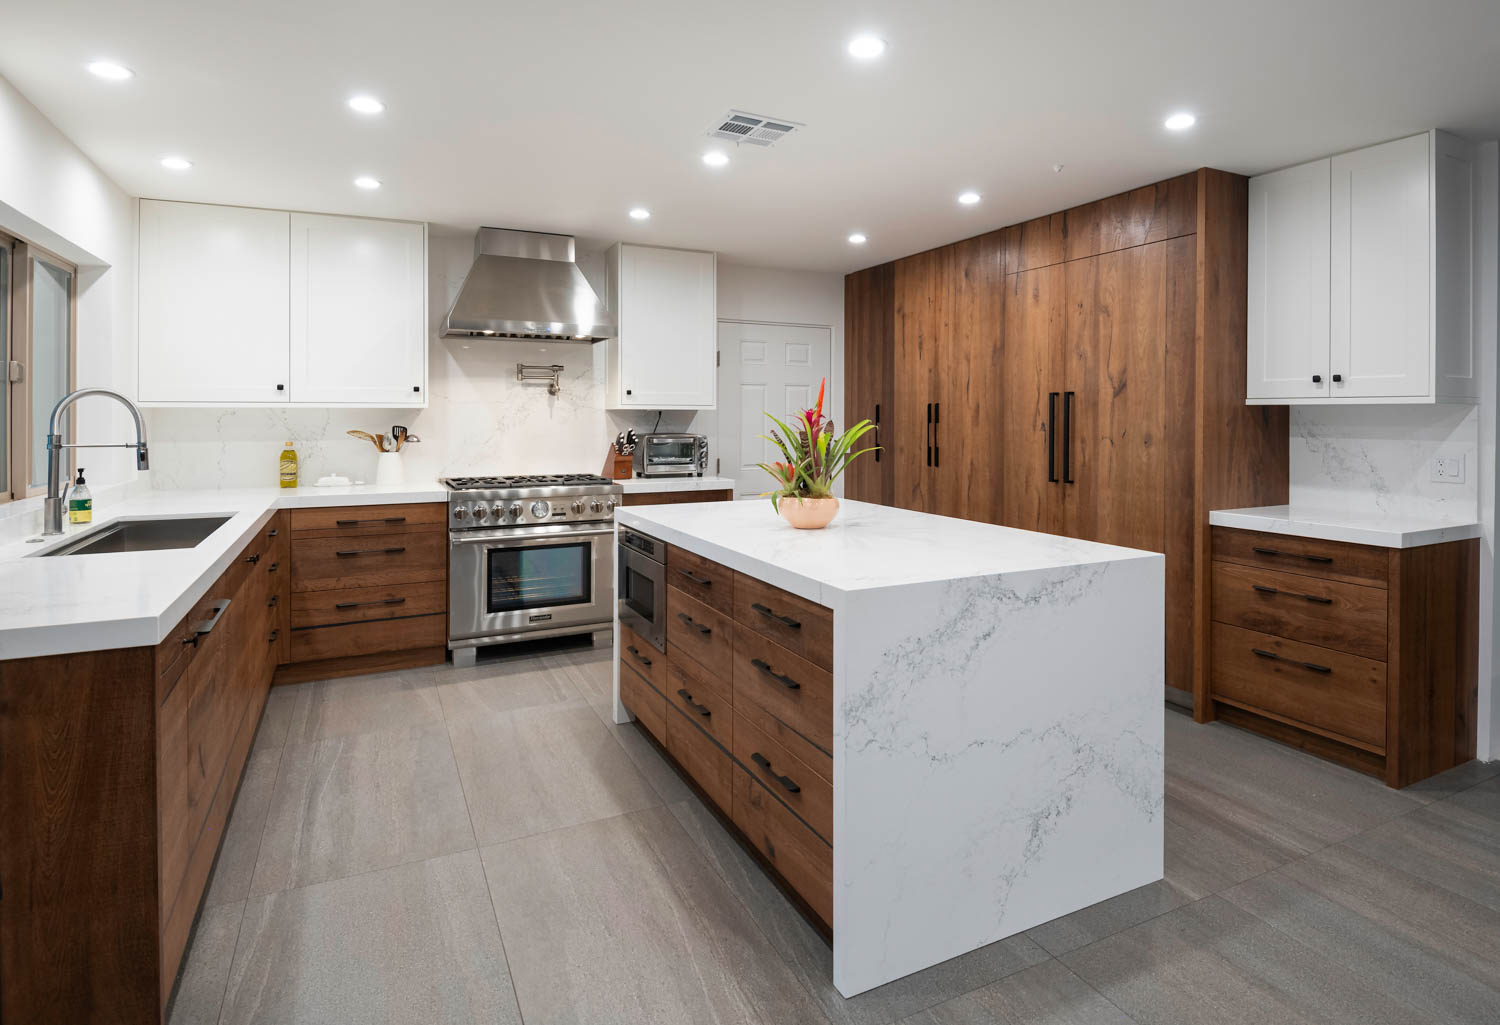 Fitucci Custom Cabinets - Los Angeles - kitchen where everything is built with white marble and custom cabinets